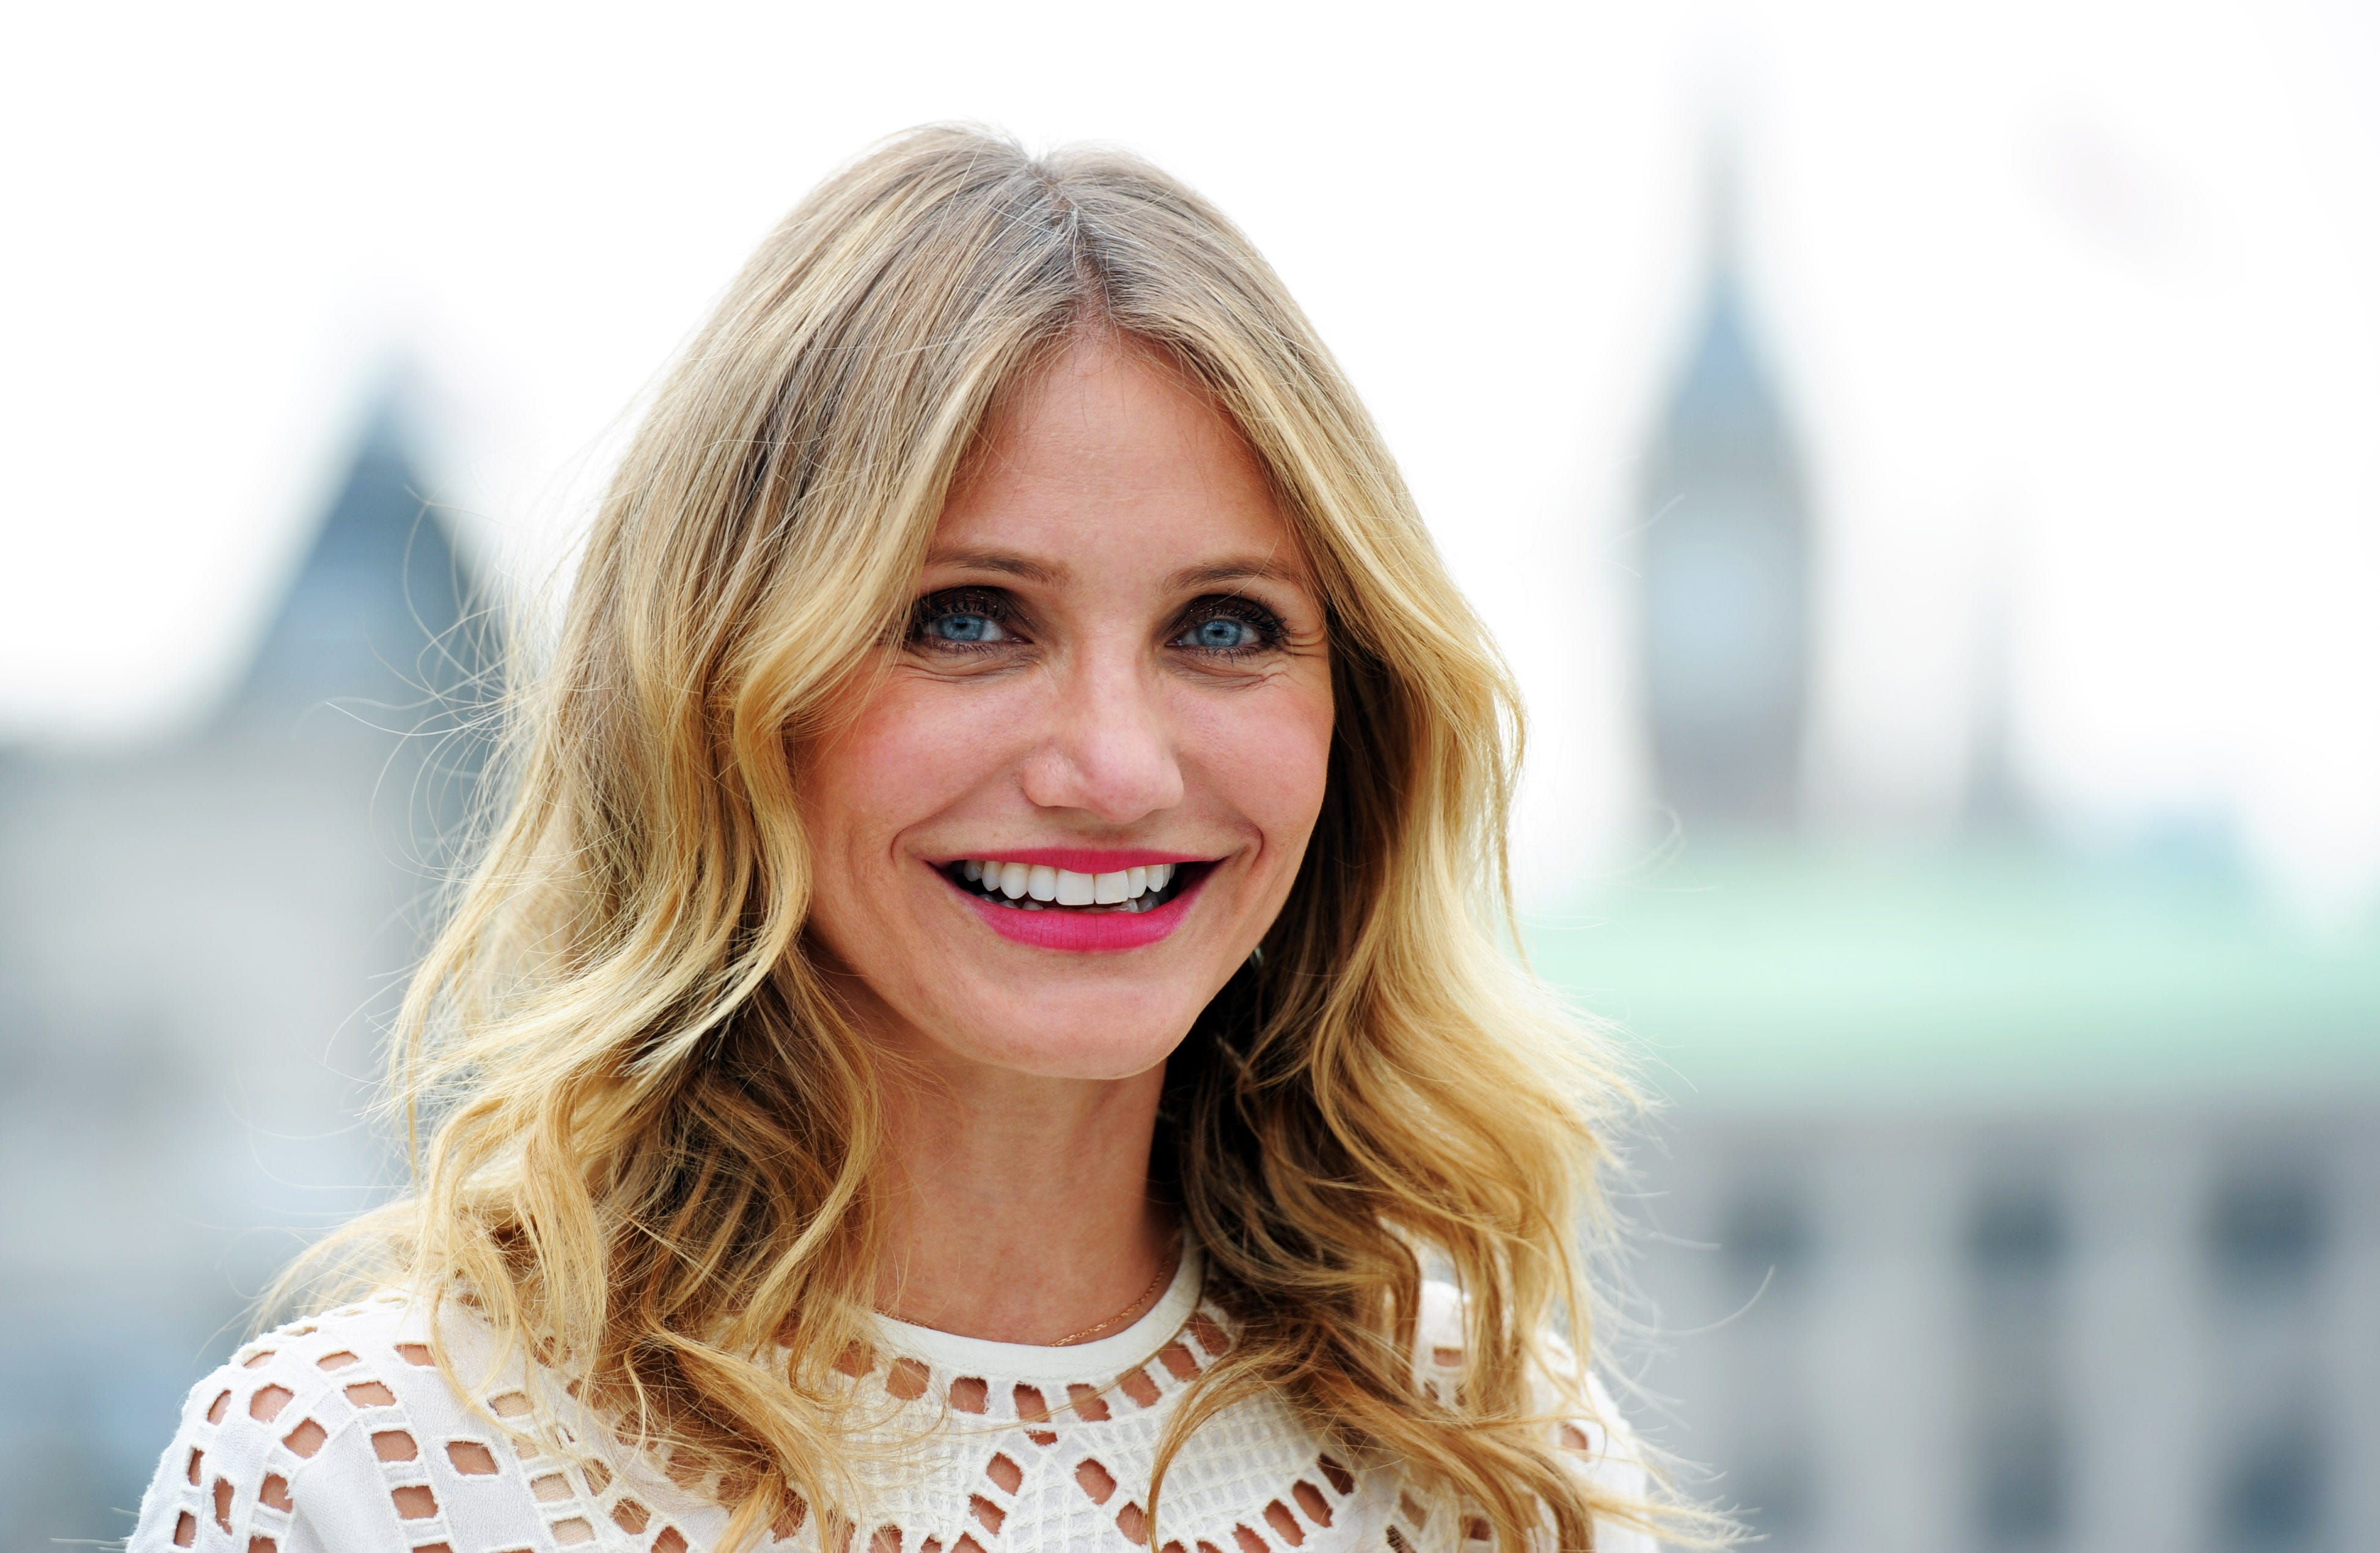 Cameron Diaz reveals to Gwyneth Paltrow why she left Hollywood:  I got a peace in my soul